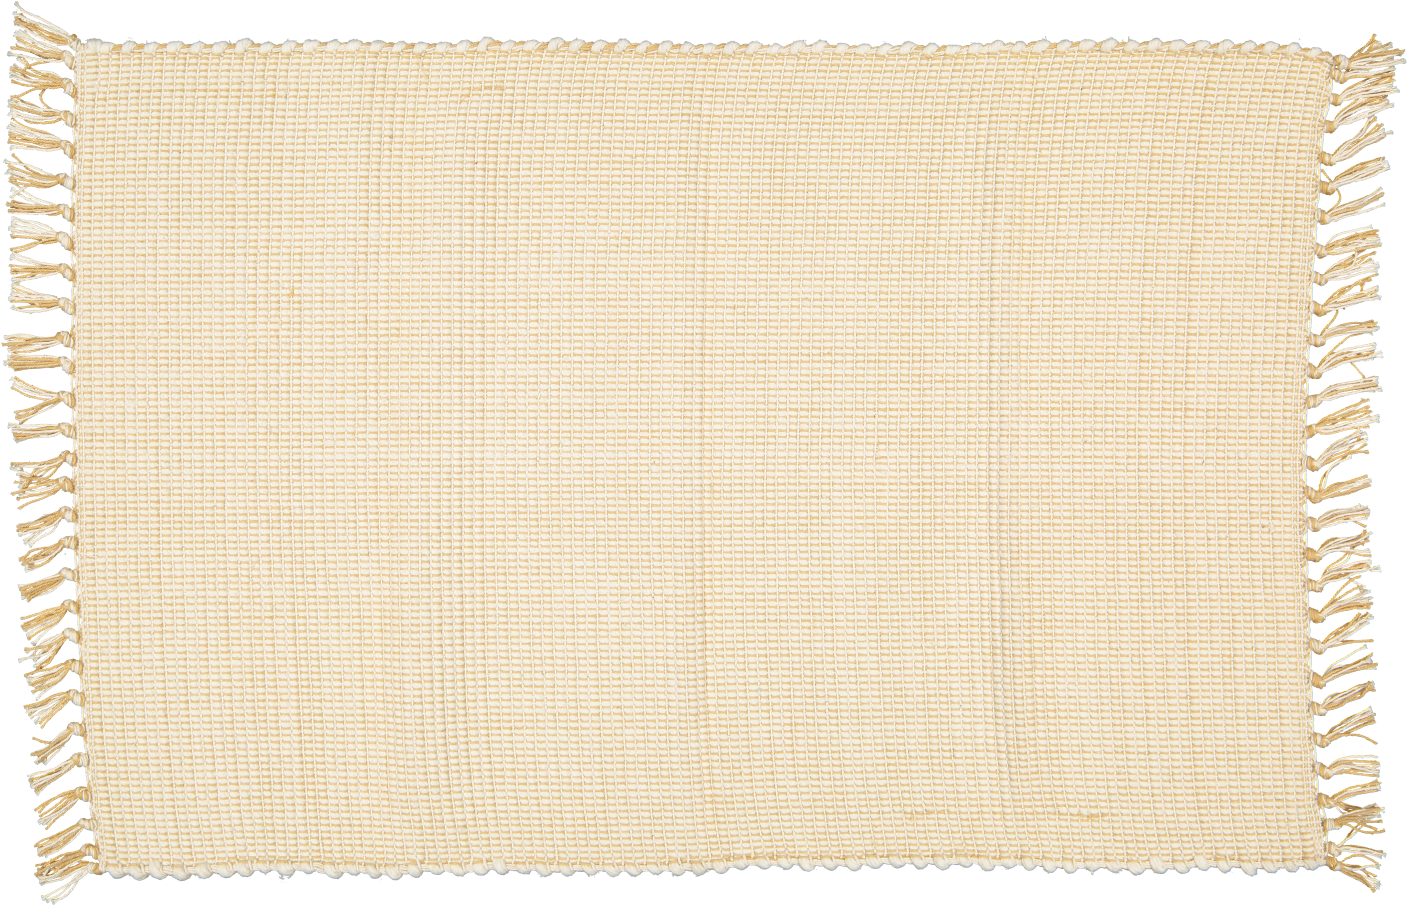 Dhurrie Dobby weave Natural with Hessian pinstripe